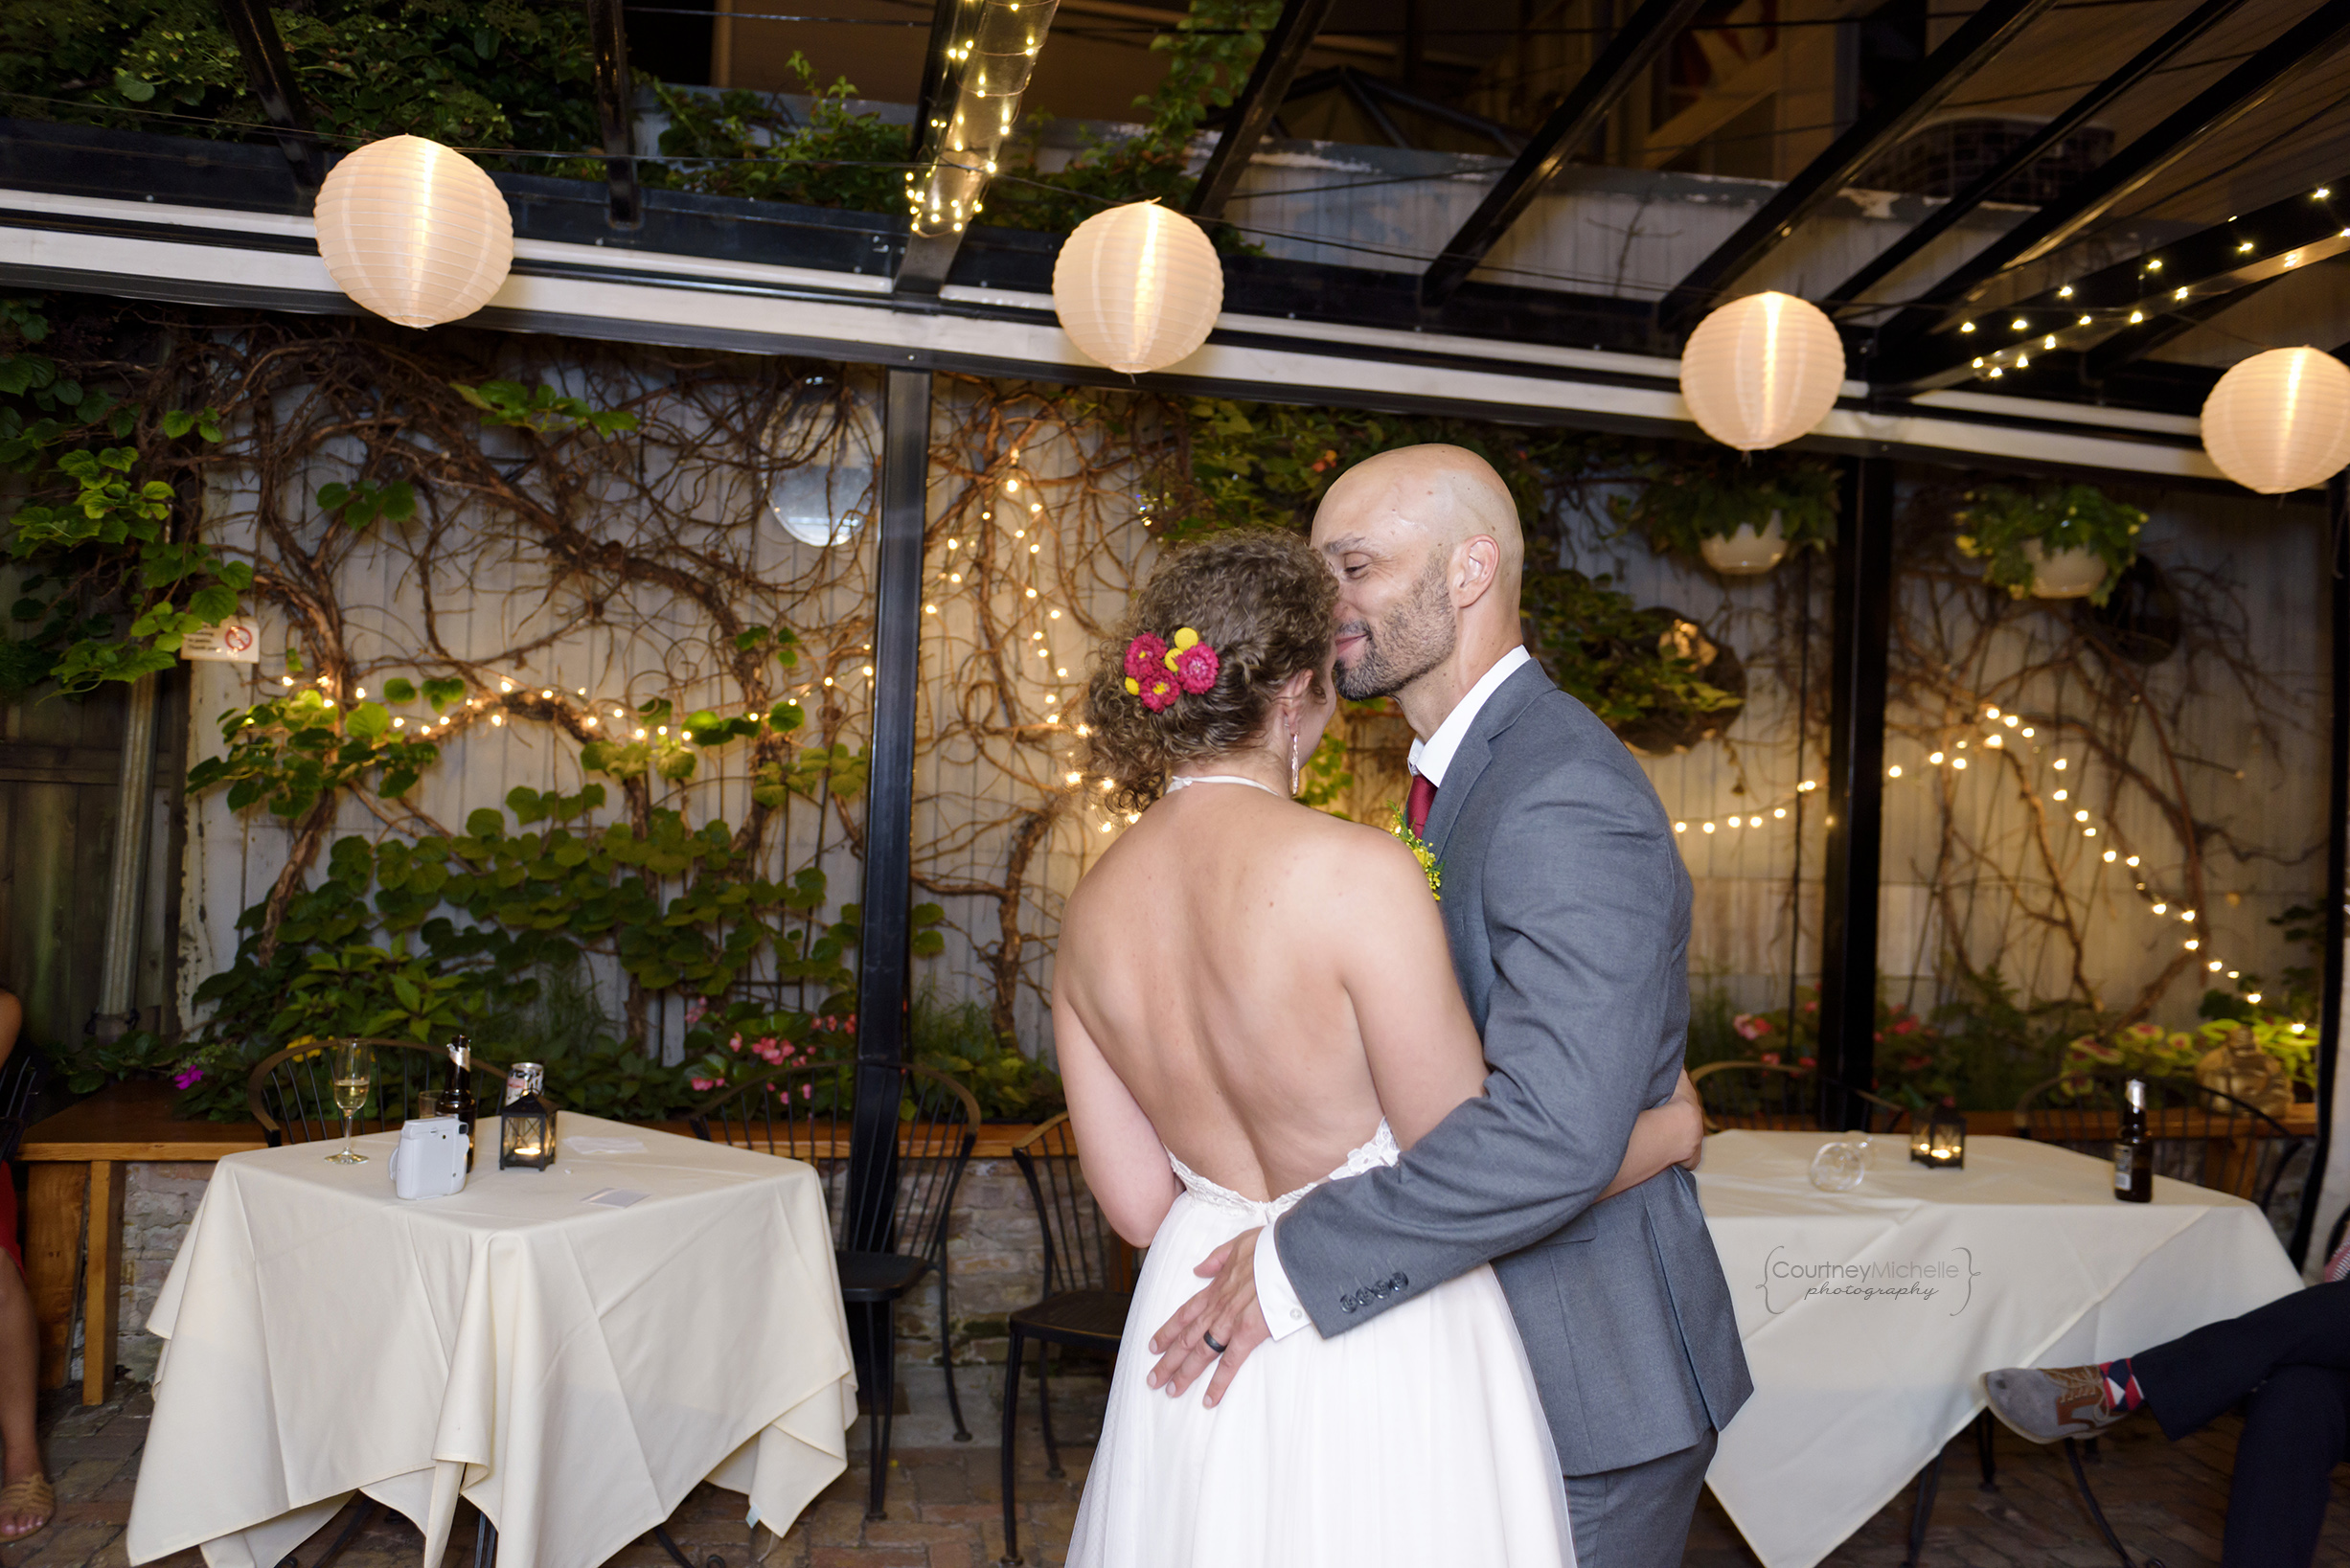 volo-chicago-patio-wedding-dance©COPYRIGHTCMP-_DSC5795edit.jpg